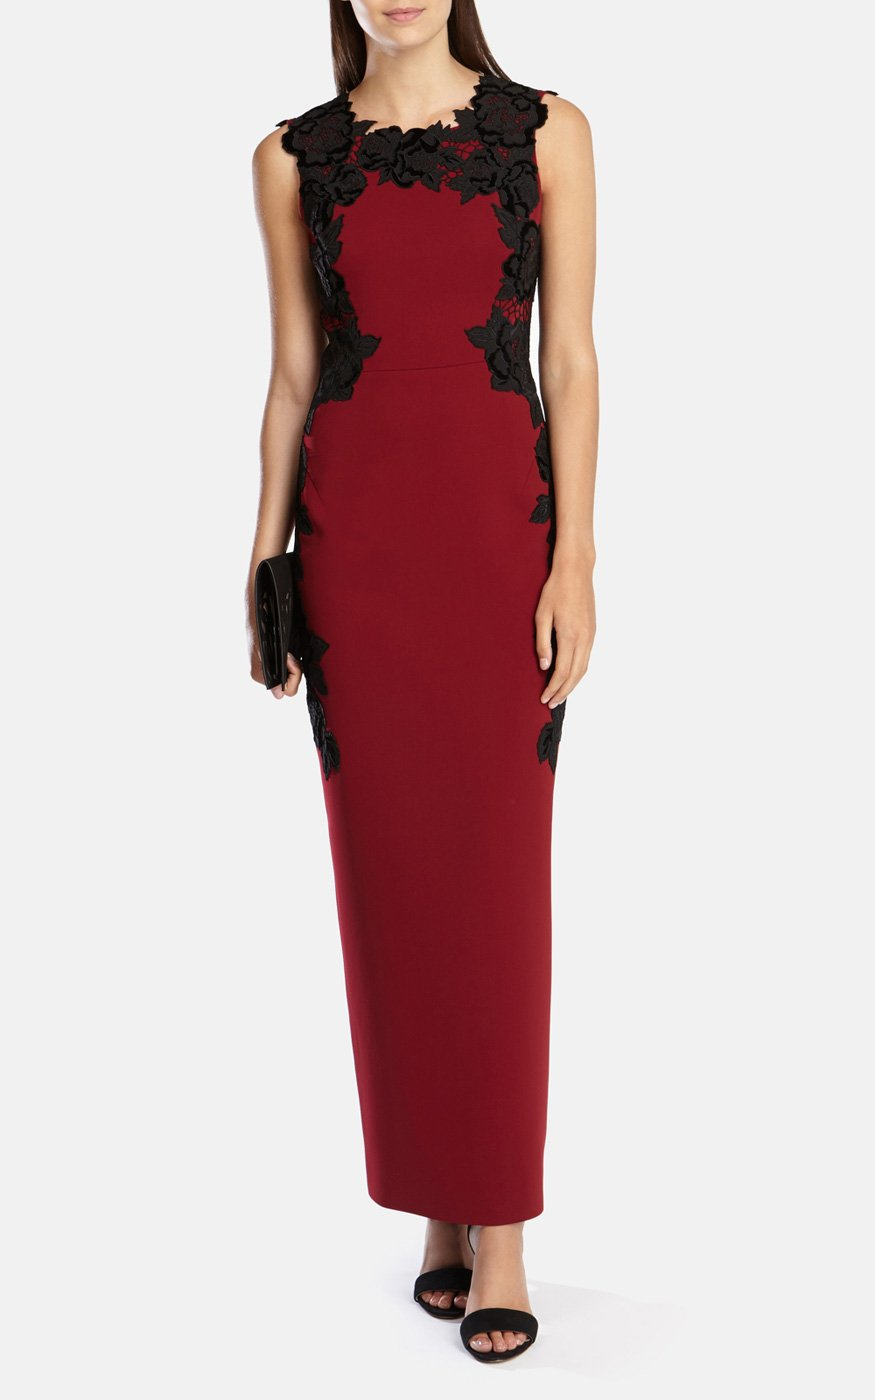 933c438ea10 ... hot karen millen floral appliquÉ pencil dress black 3 gallery gallery  gallery 24969 211ed